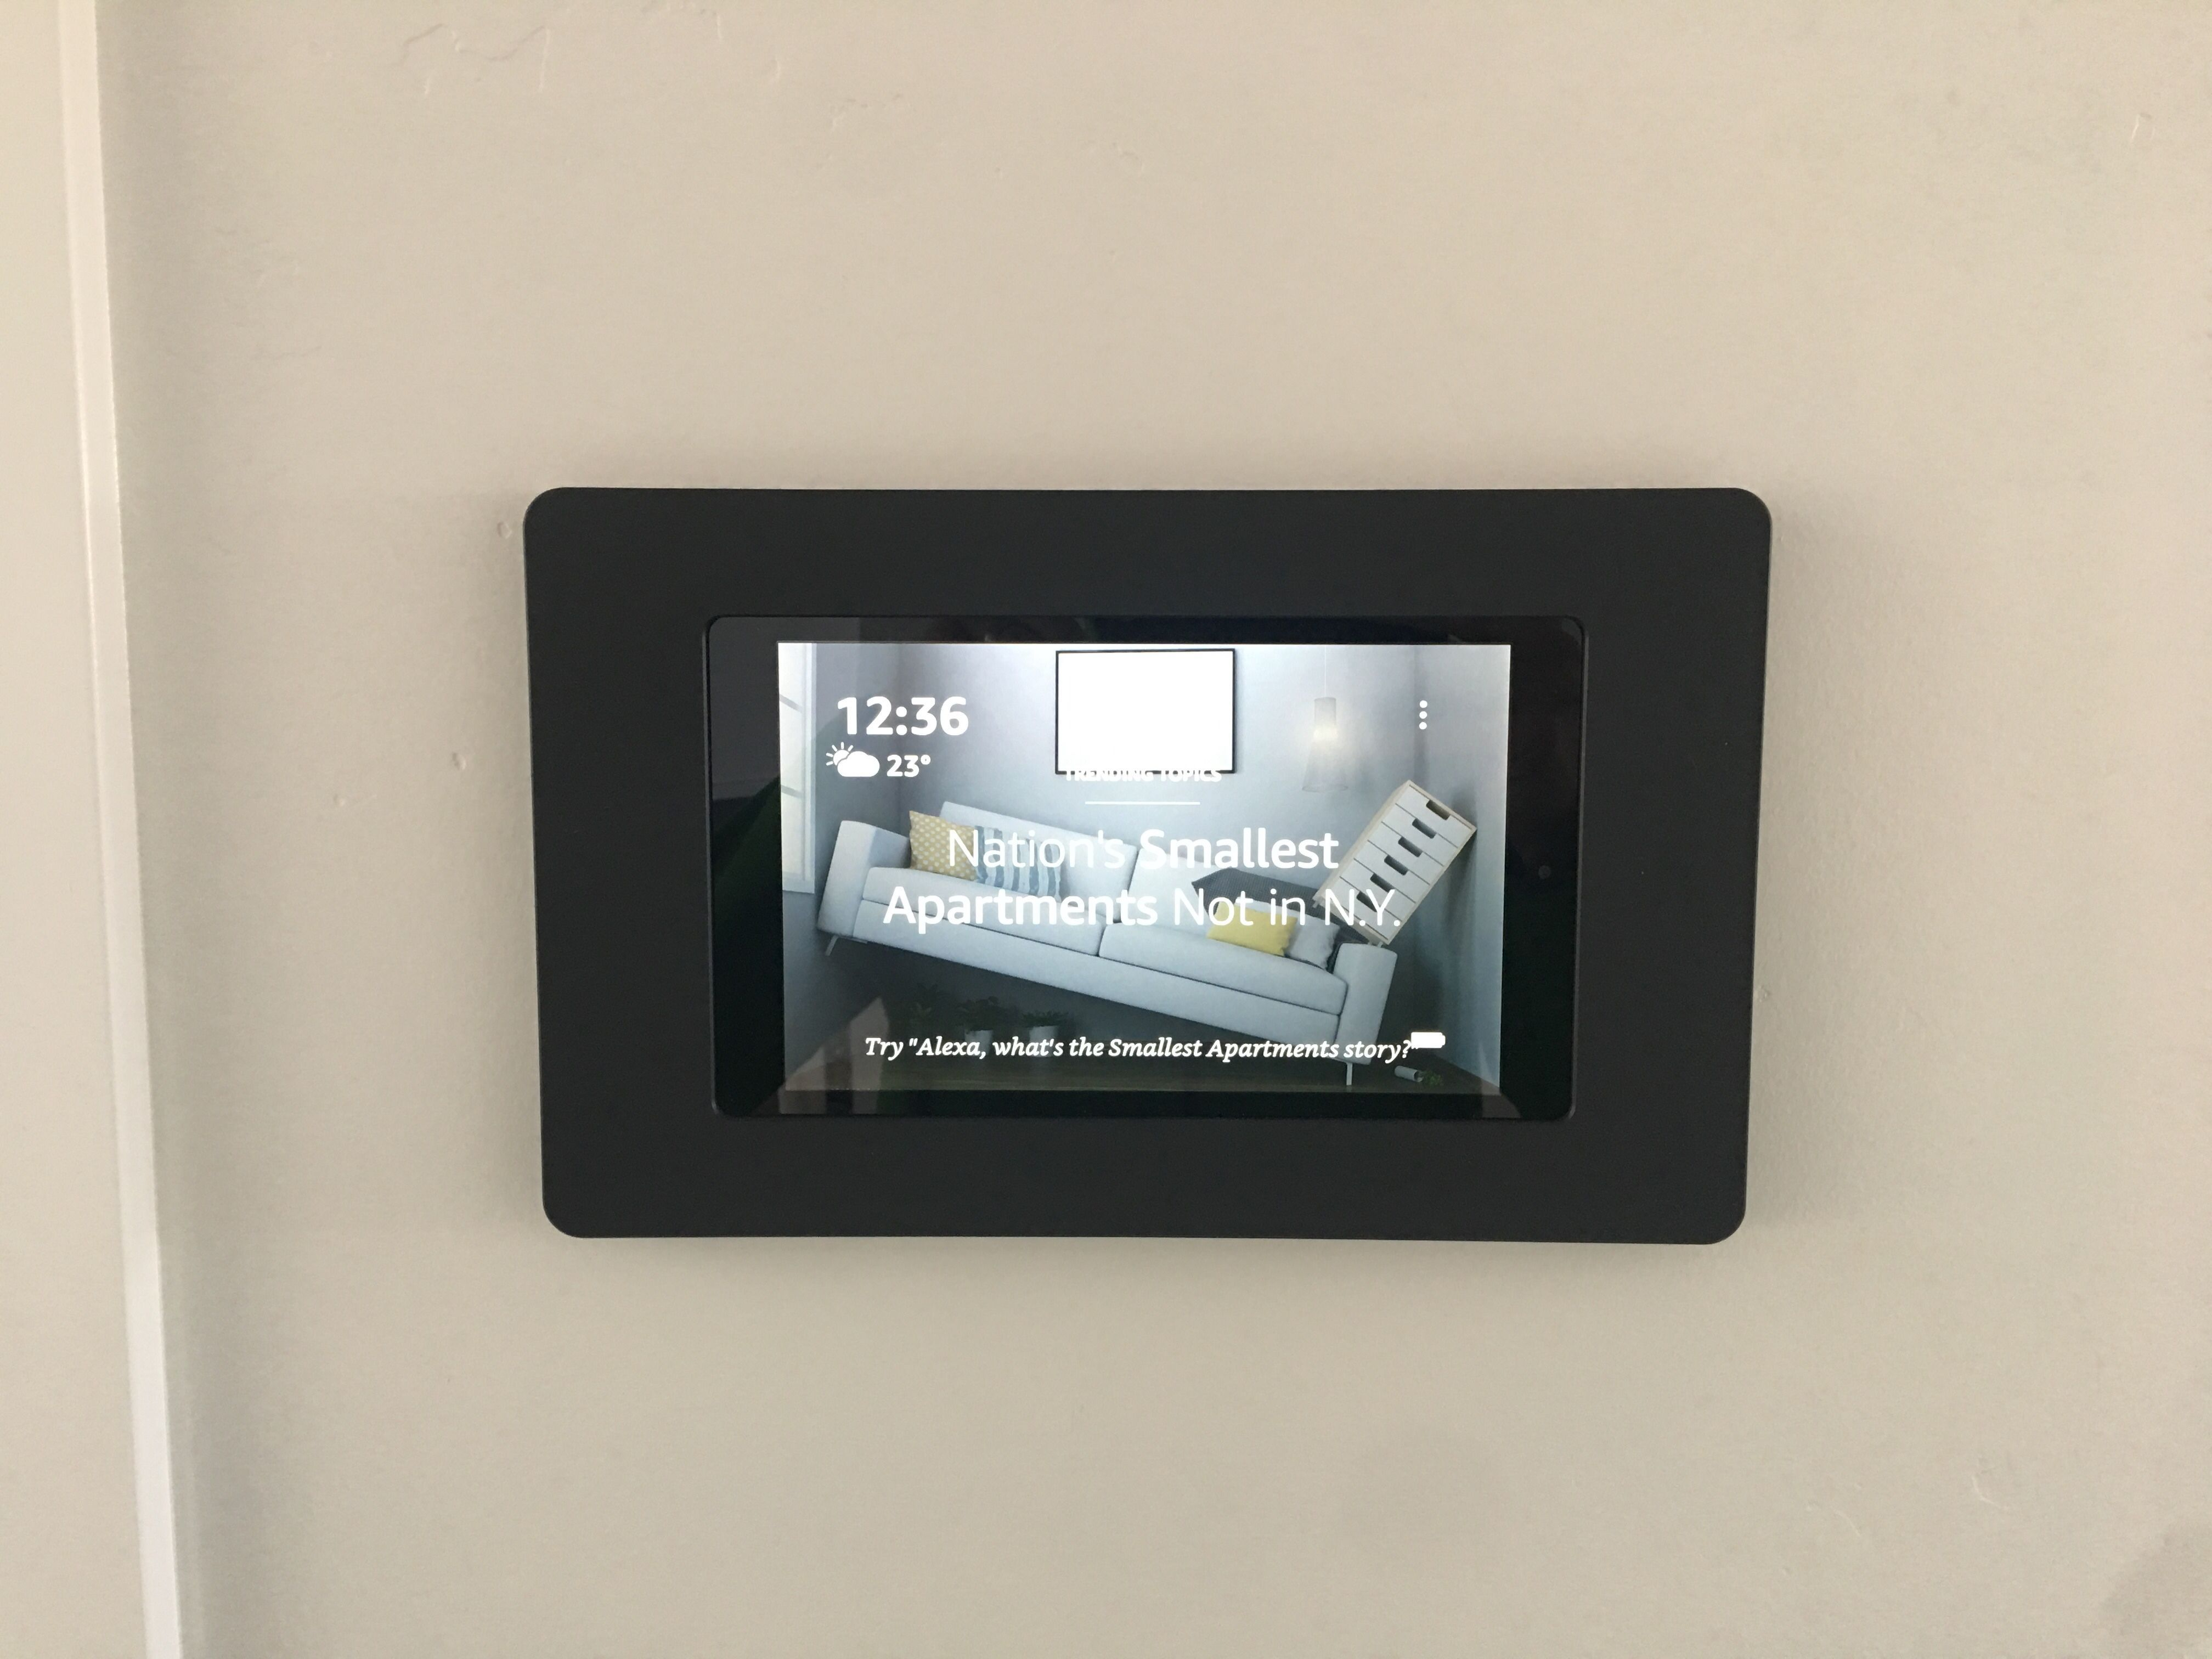 Have An Amazon Fire Tablet That You Want To Use For Your